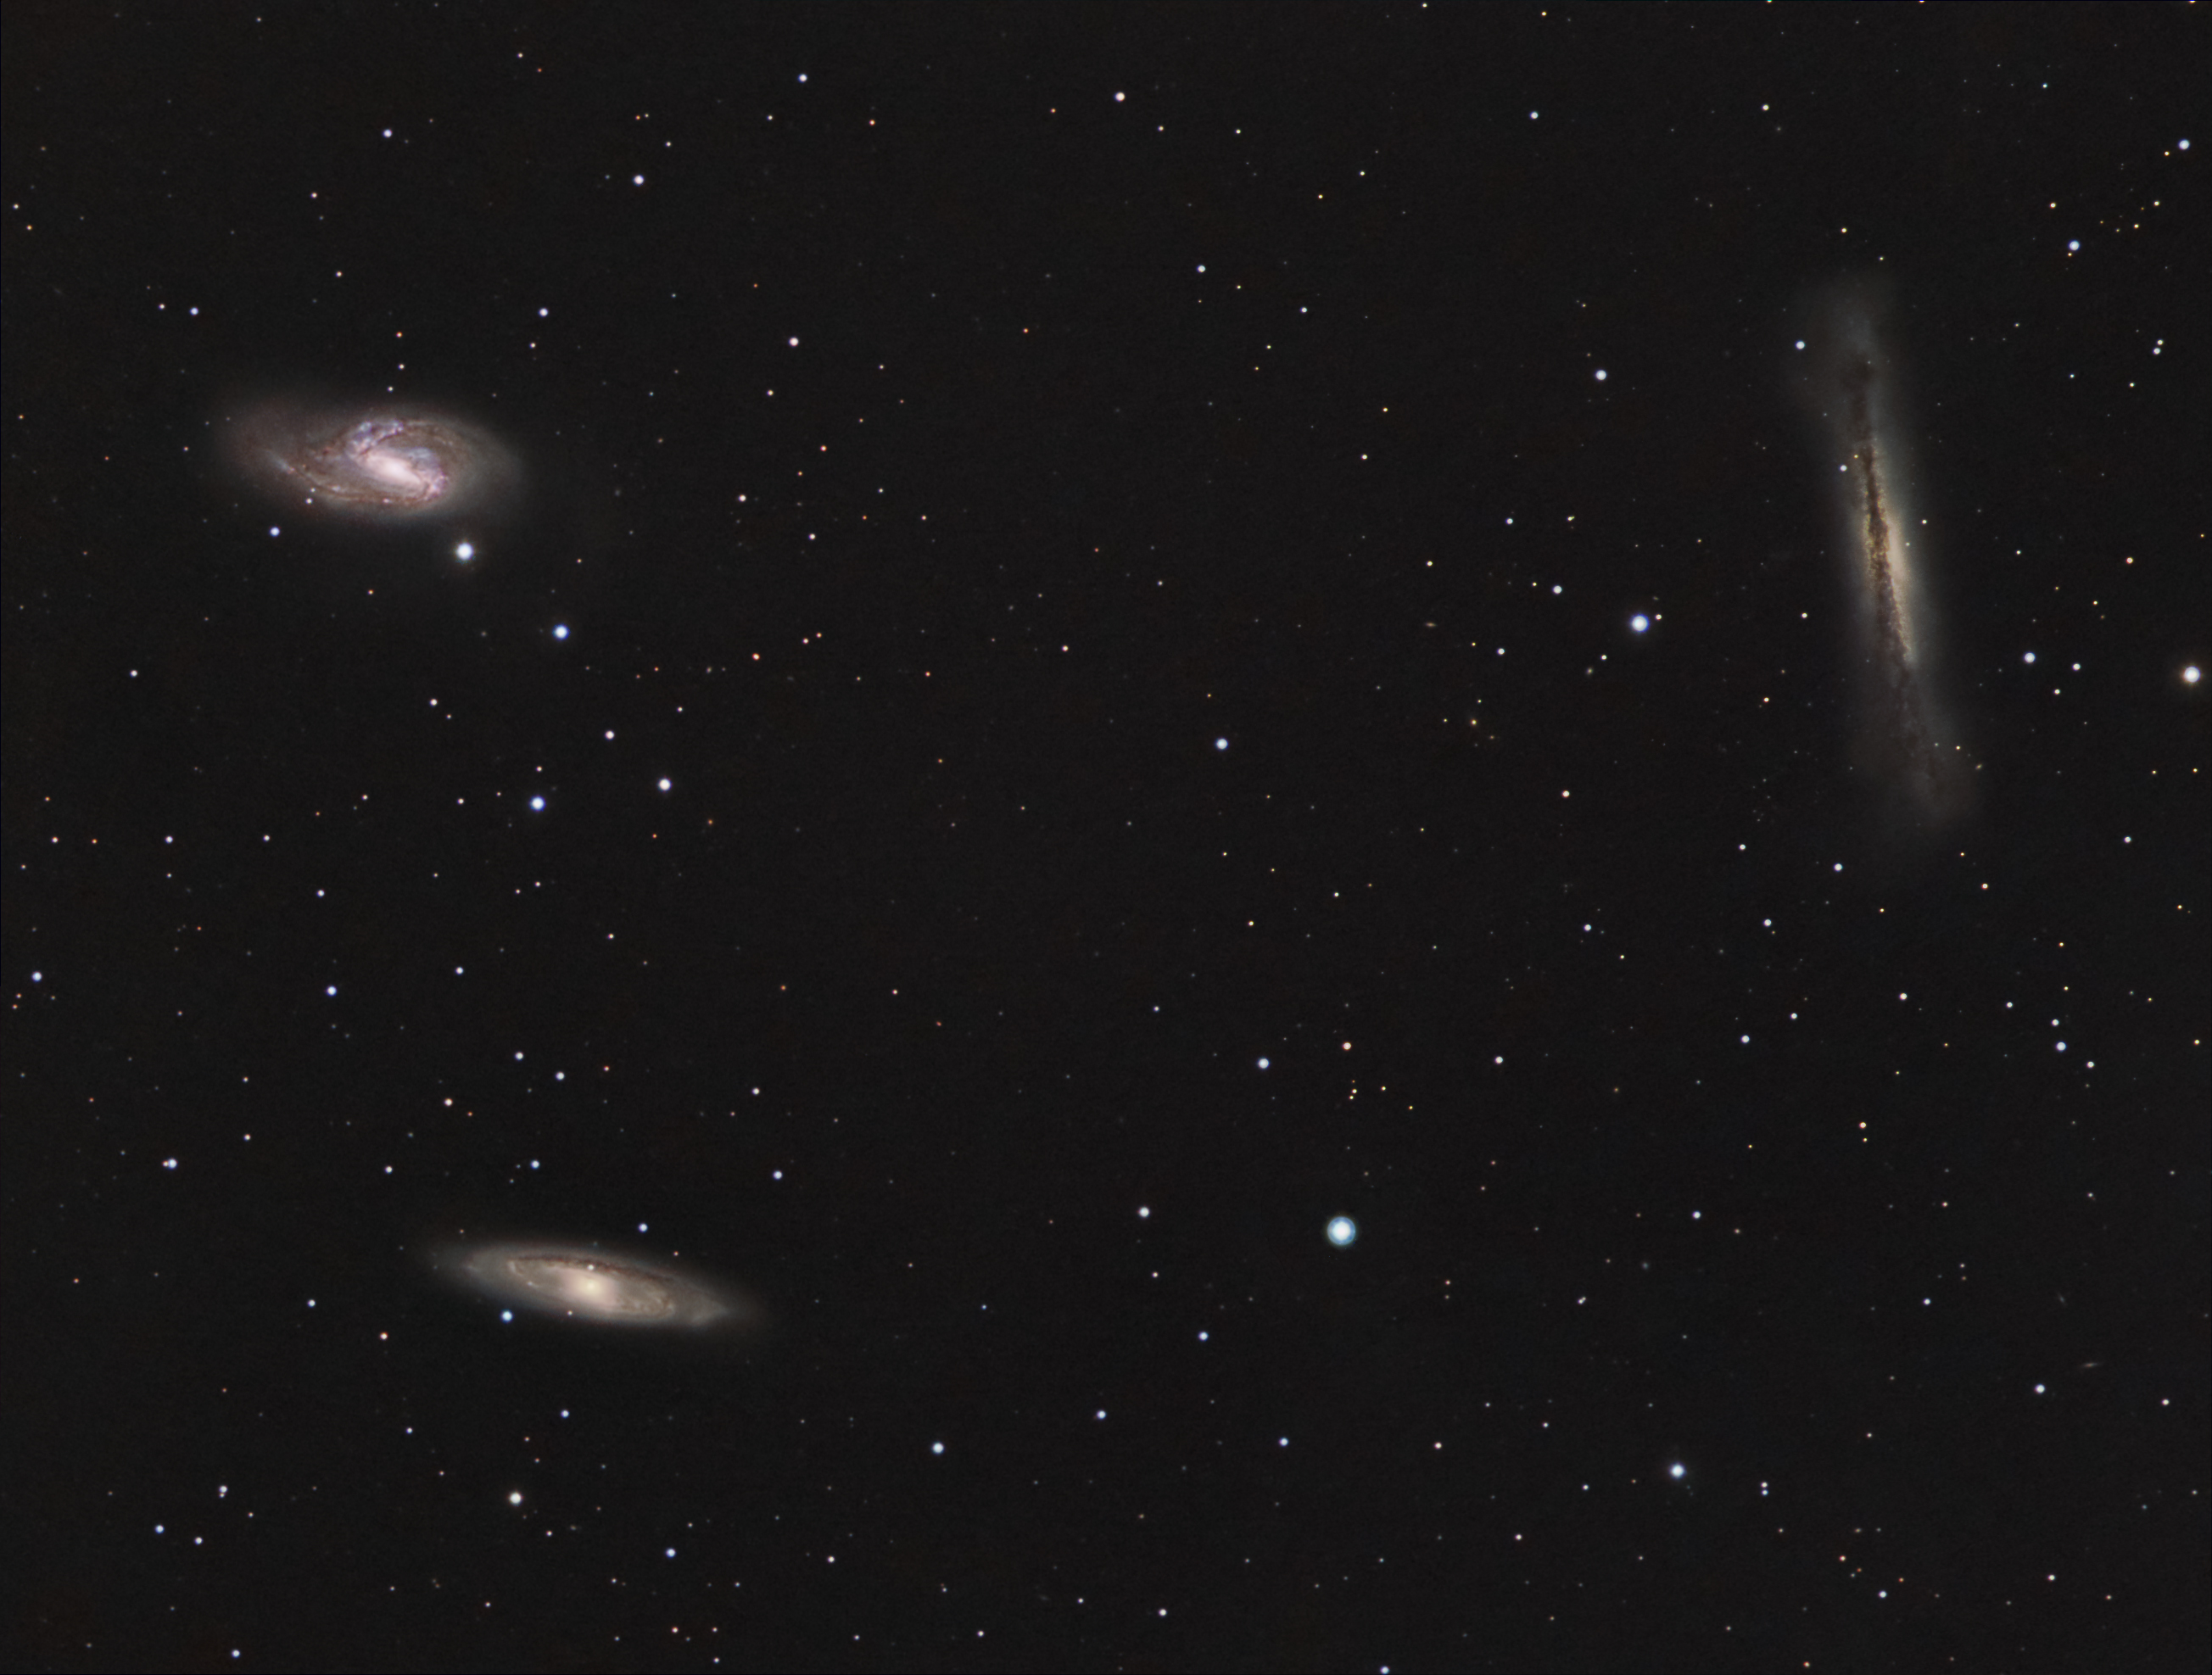 Leo triplet NGC3628, M66 and M65